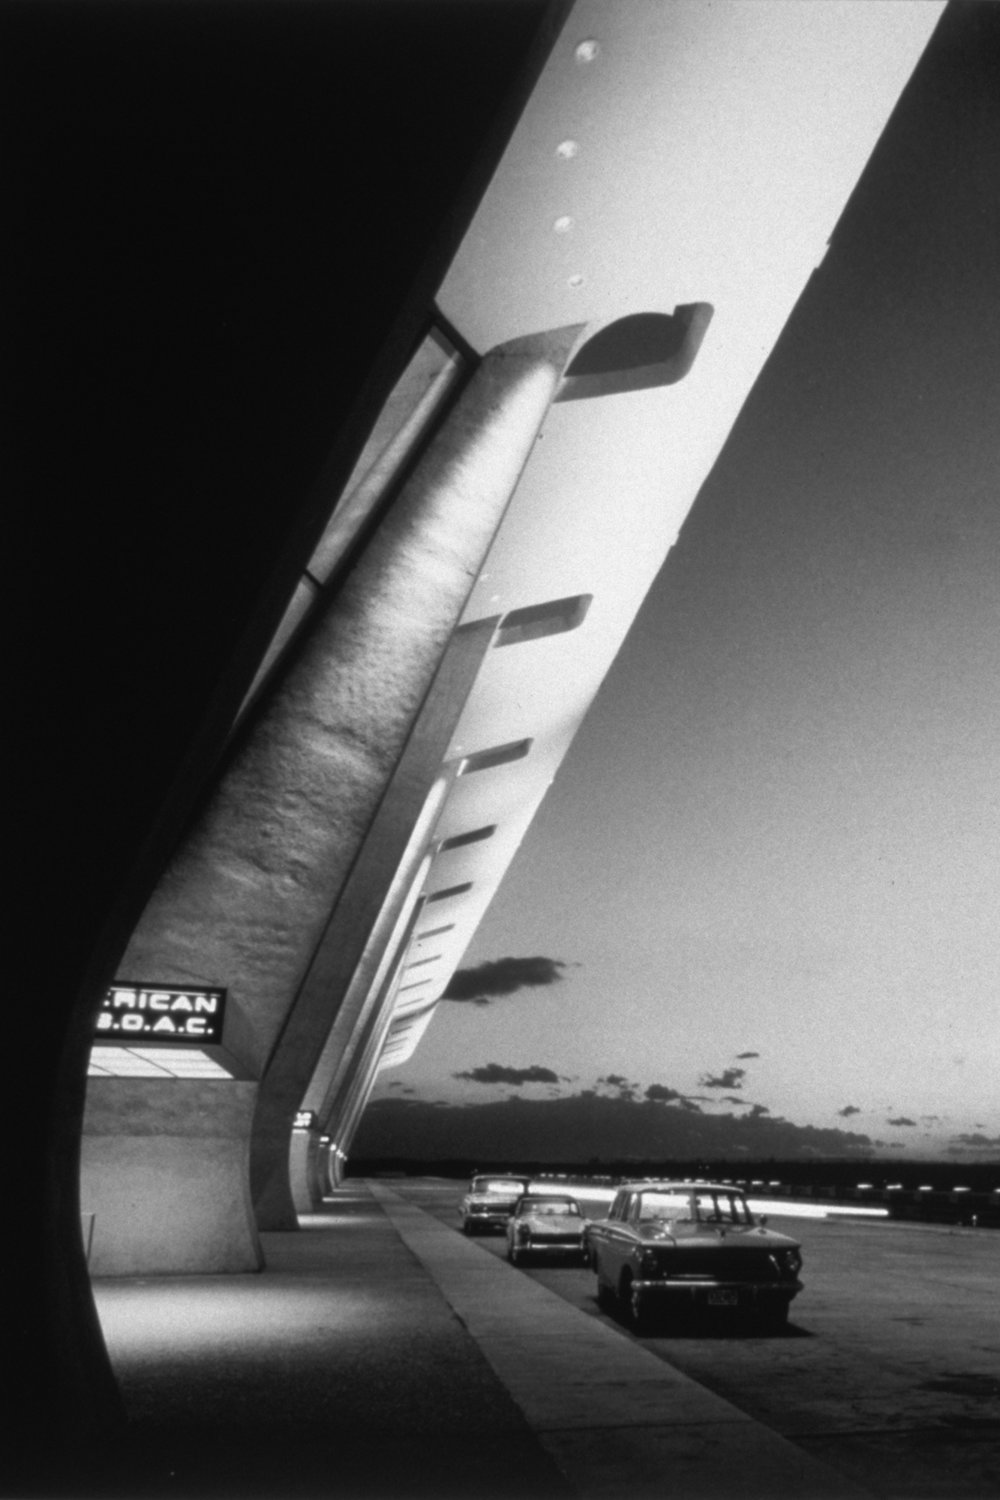 Dulles International Airport Terminal, Chantilly, Virginia, circa 1963